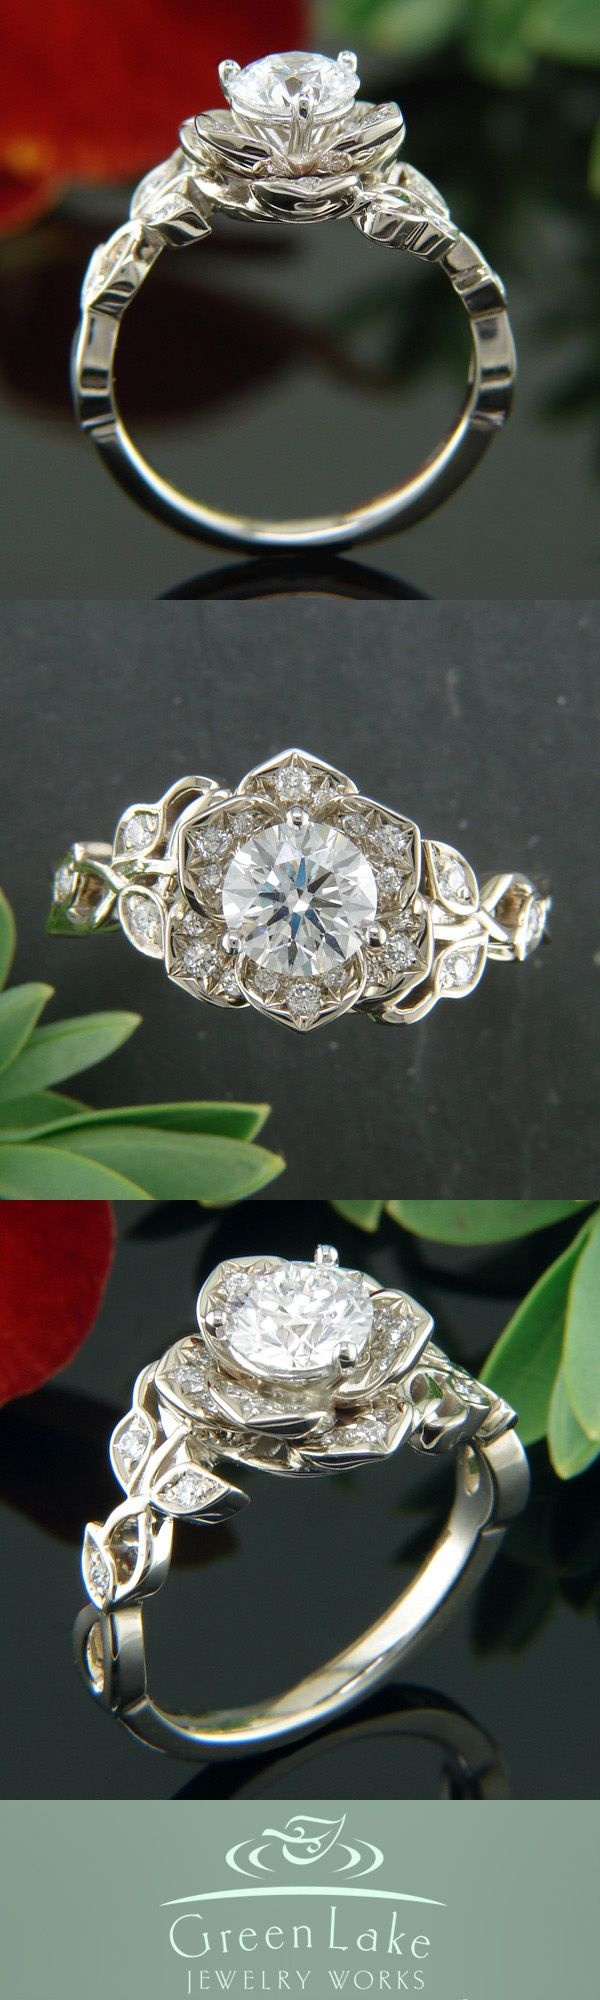 Lotus And Vine Inspired Warm White Gold Engagement Ring Lotus And